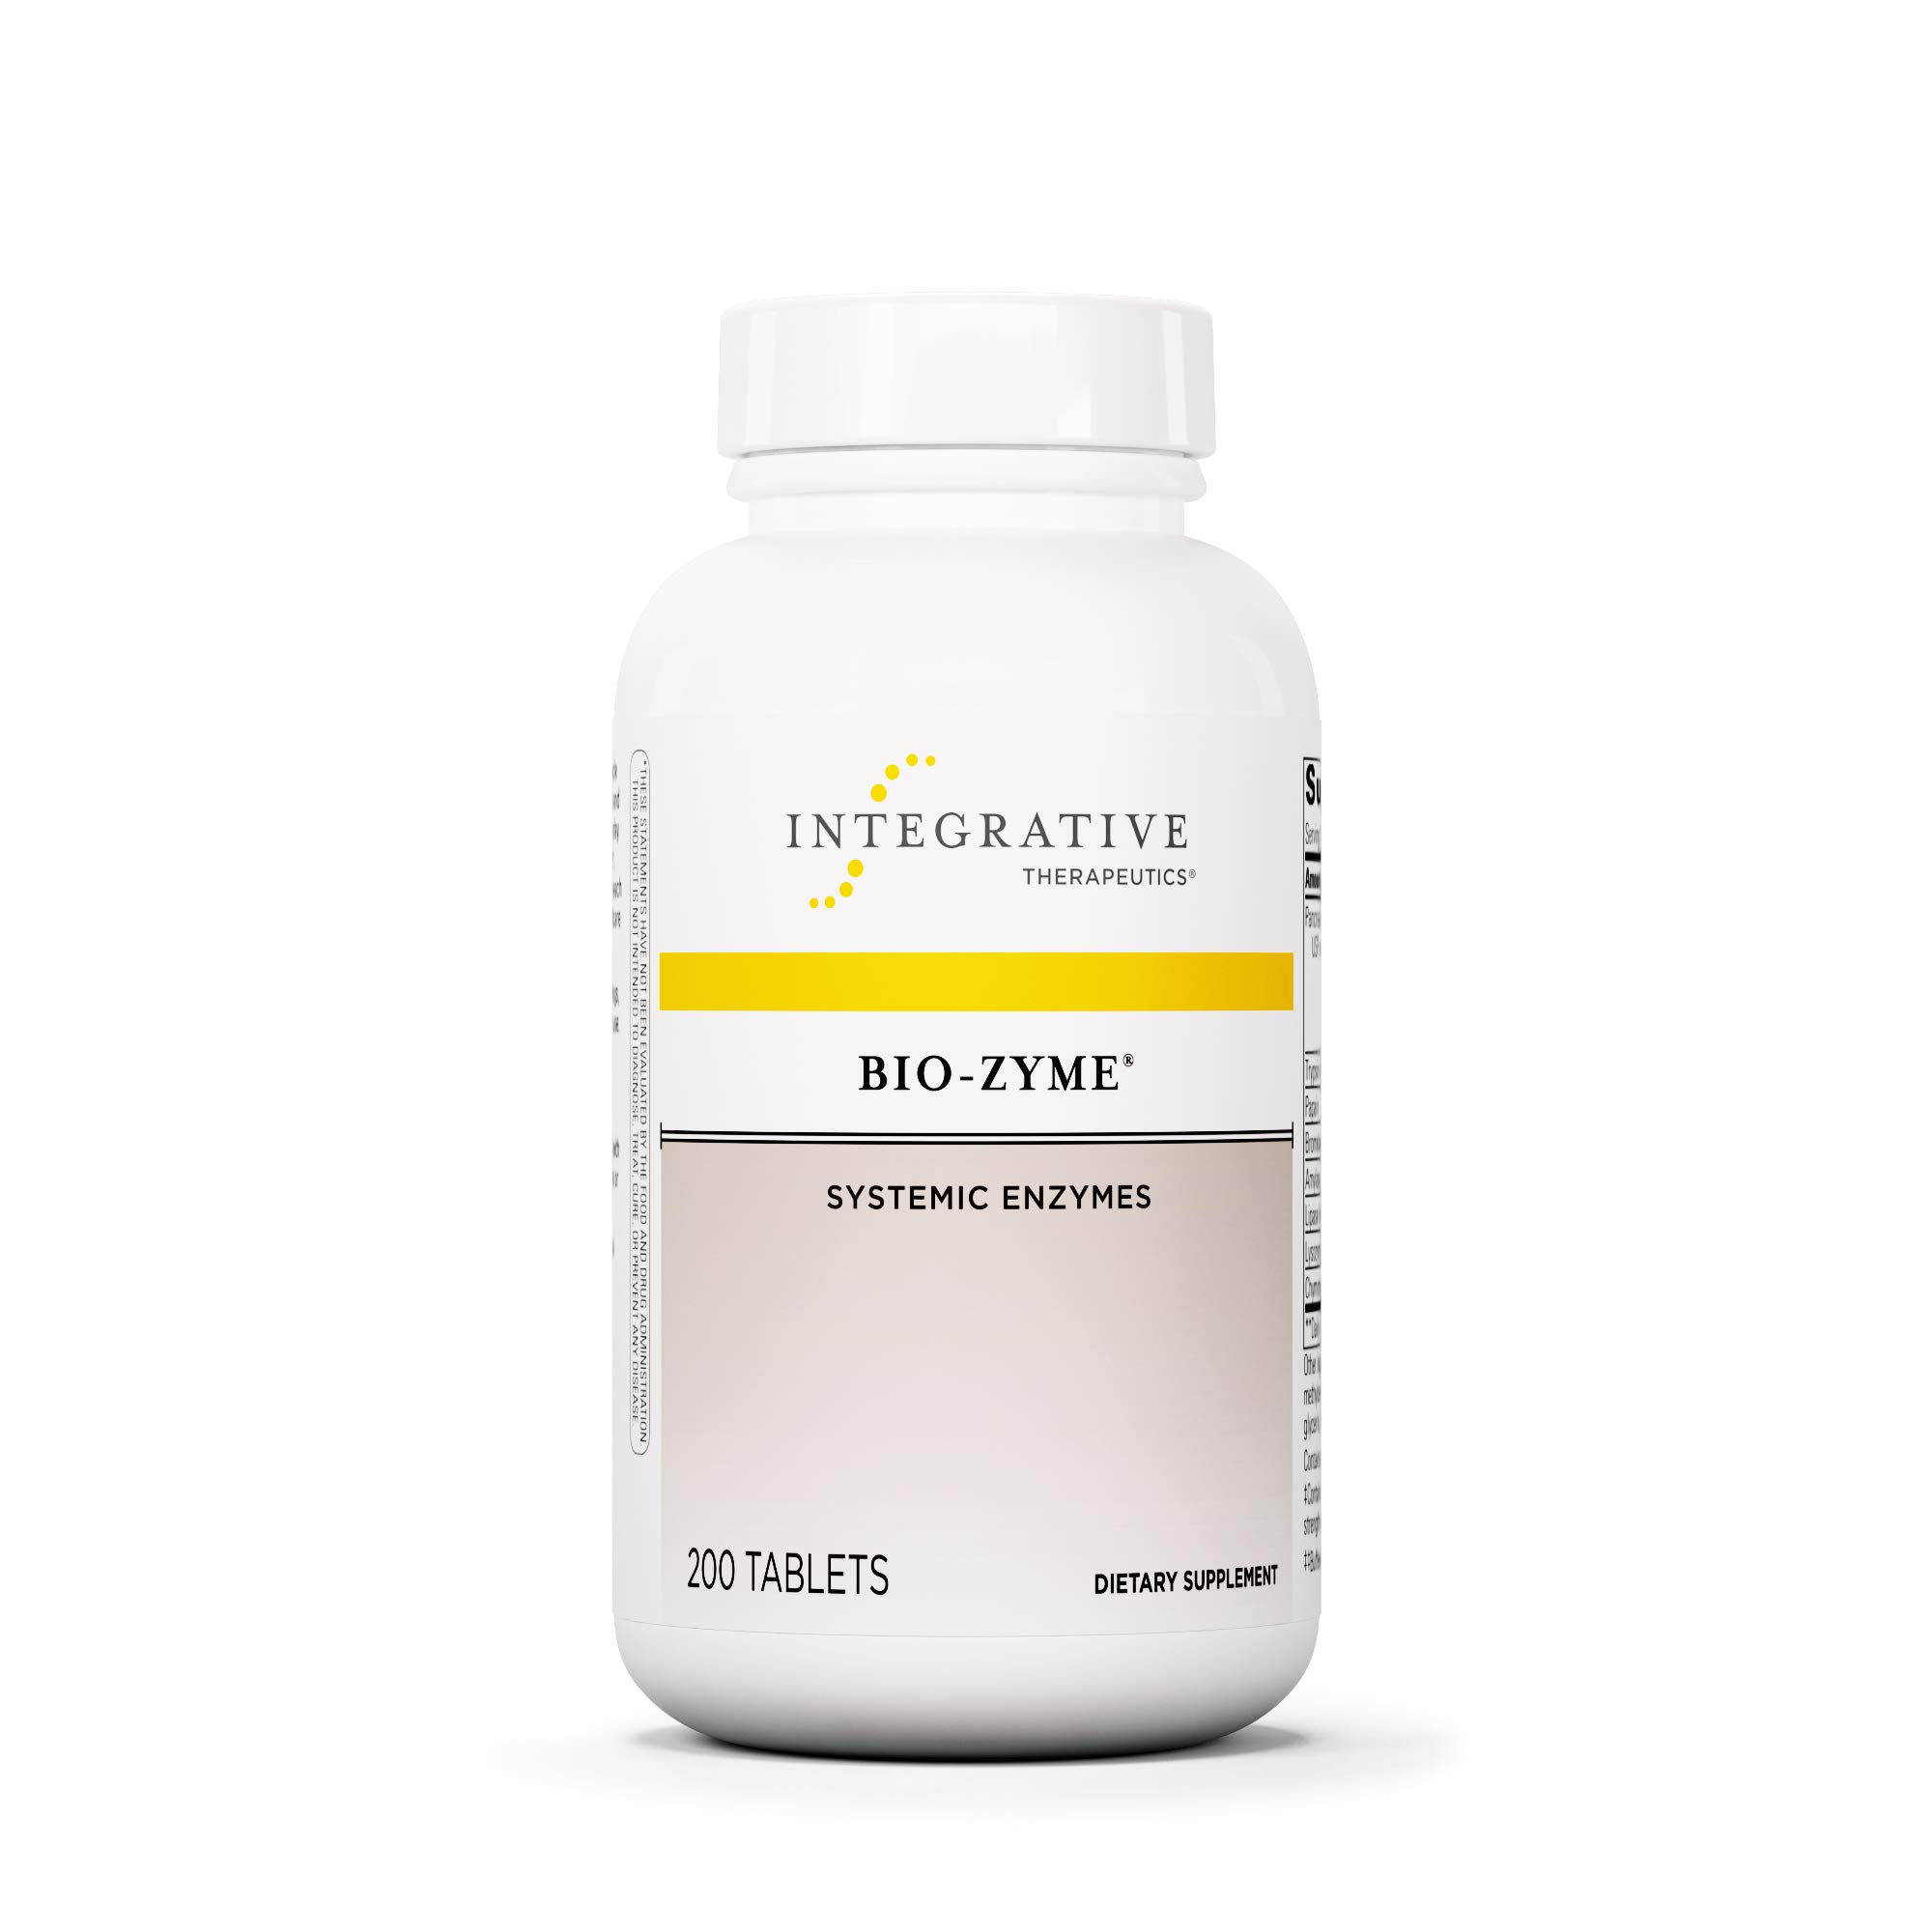 Integrative Therapeutics - Bio-Zyme - Systemic Enzymes - Full-Strength Pancreatic Enzyme Complex to Support Digestive Health - 200 Tablets